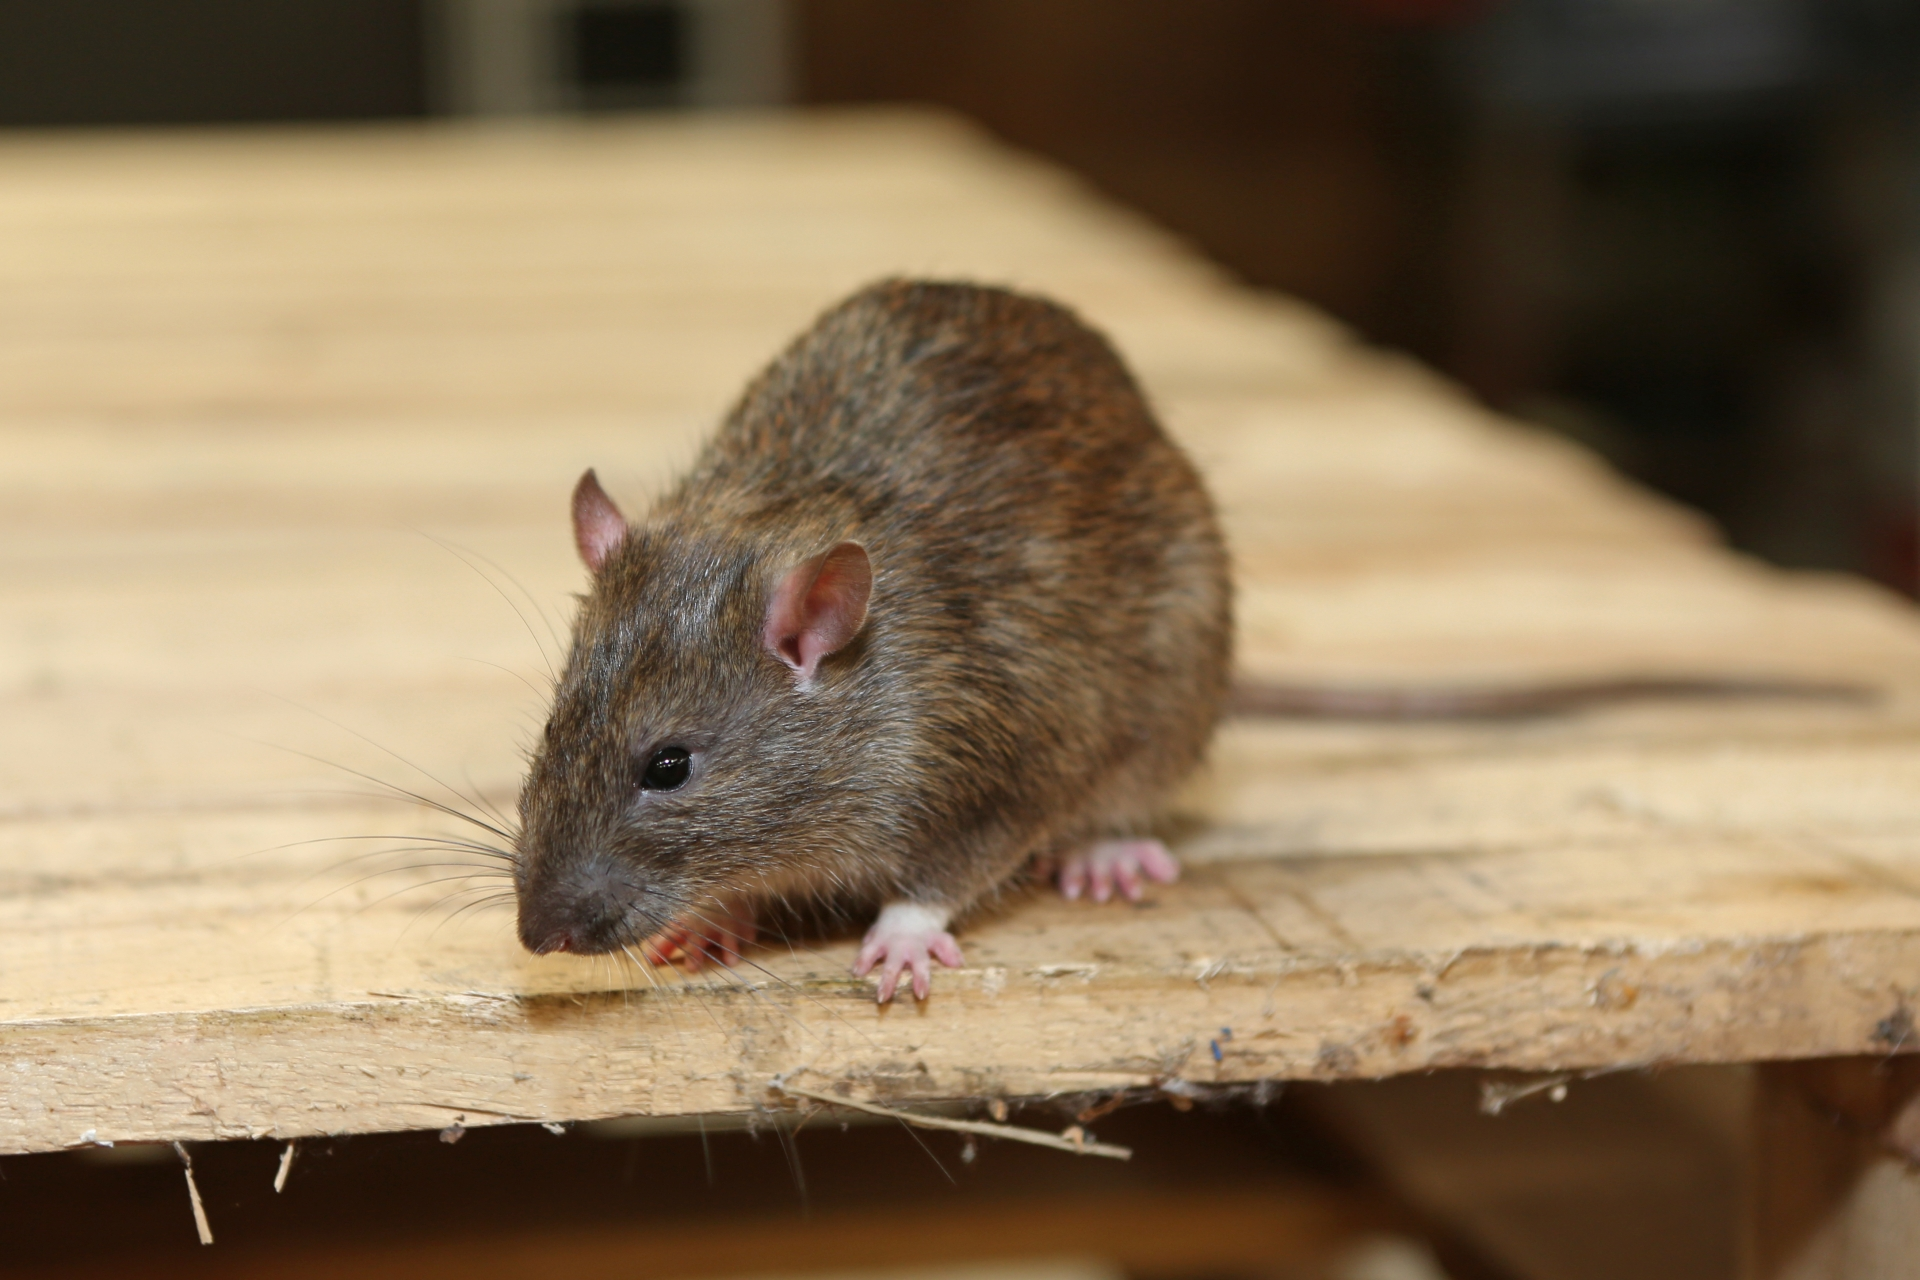 Rat Infestation, Pest Control in Totteridge, Whetstone, N20. Call Now 020 8166 9746